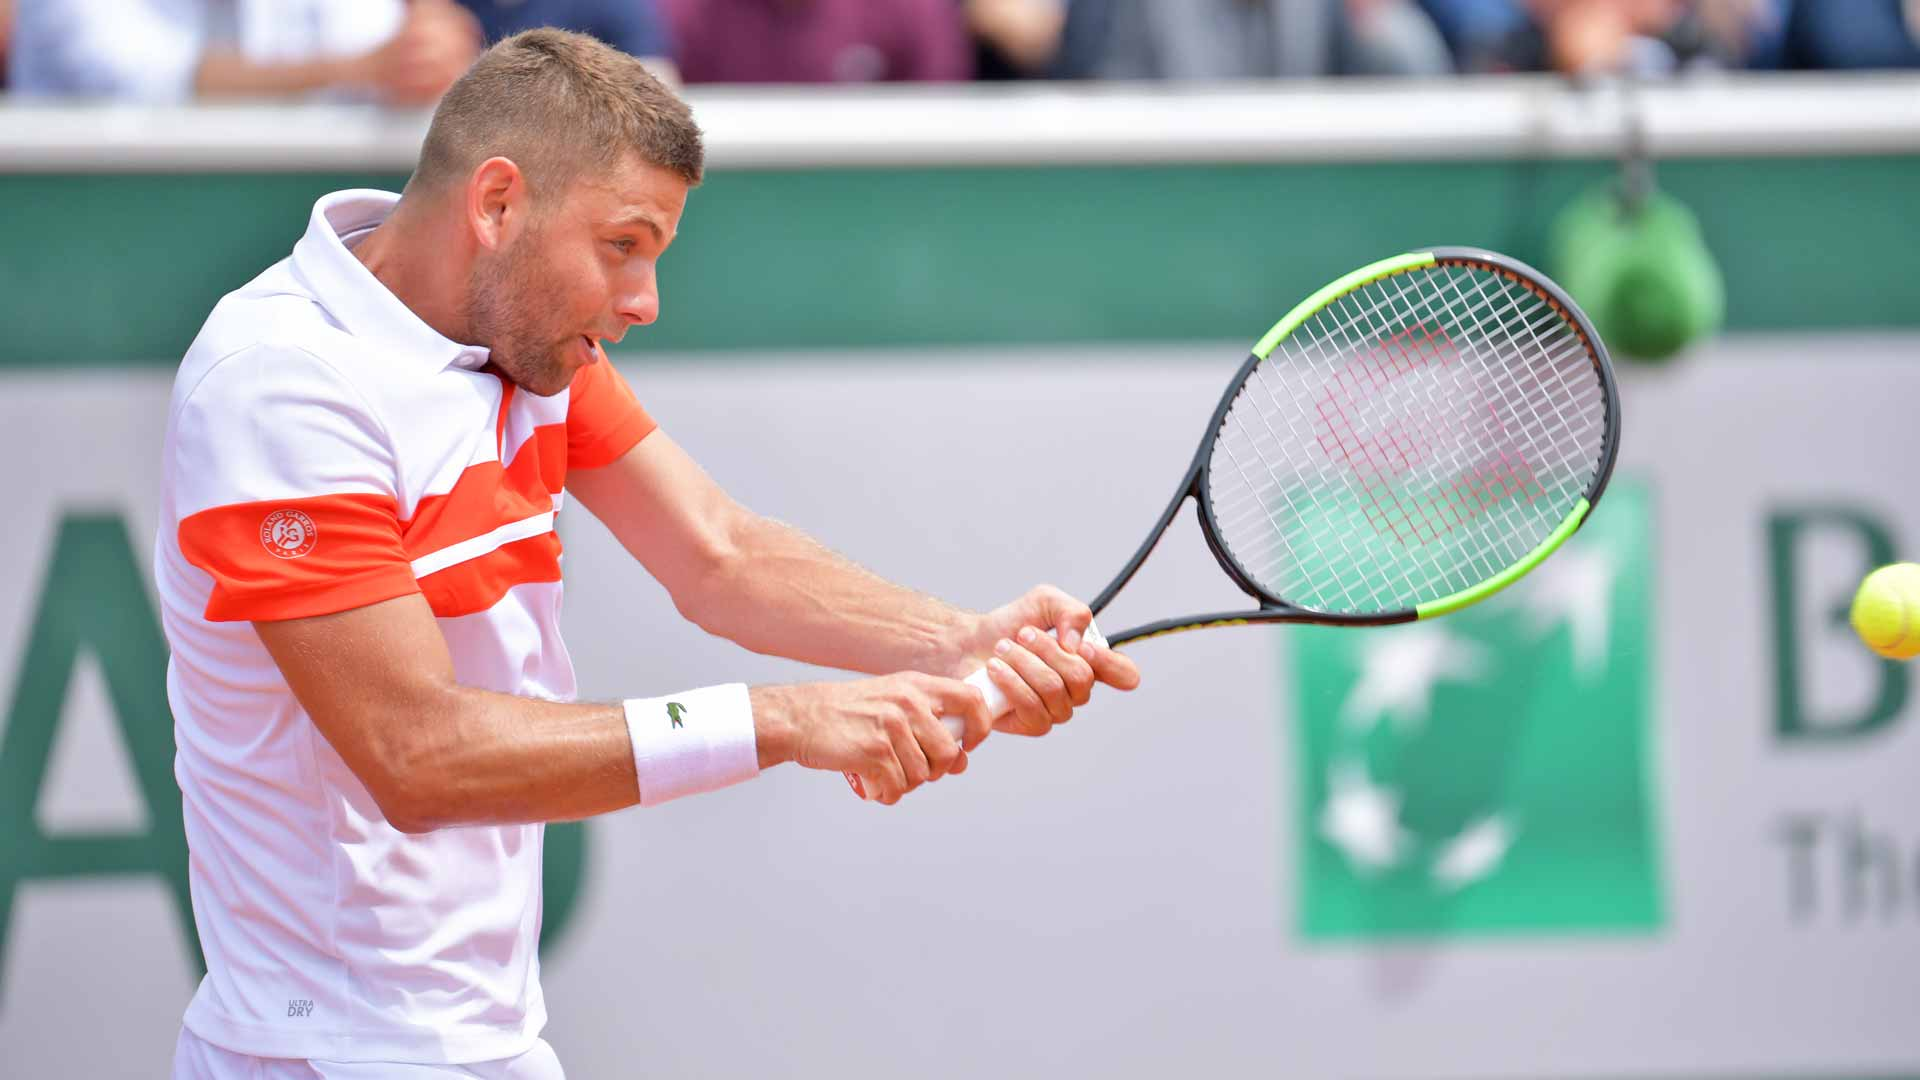 <a href='/en/players/filip-krajinovic/kb05/overview'>Filip Krajinovic</a> hits a backhand at <a href='/en/tournaments/roland-garros/520/overview'>Roland Garros</a>